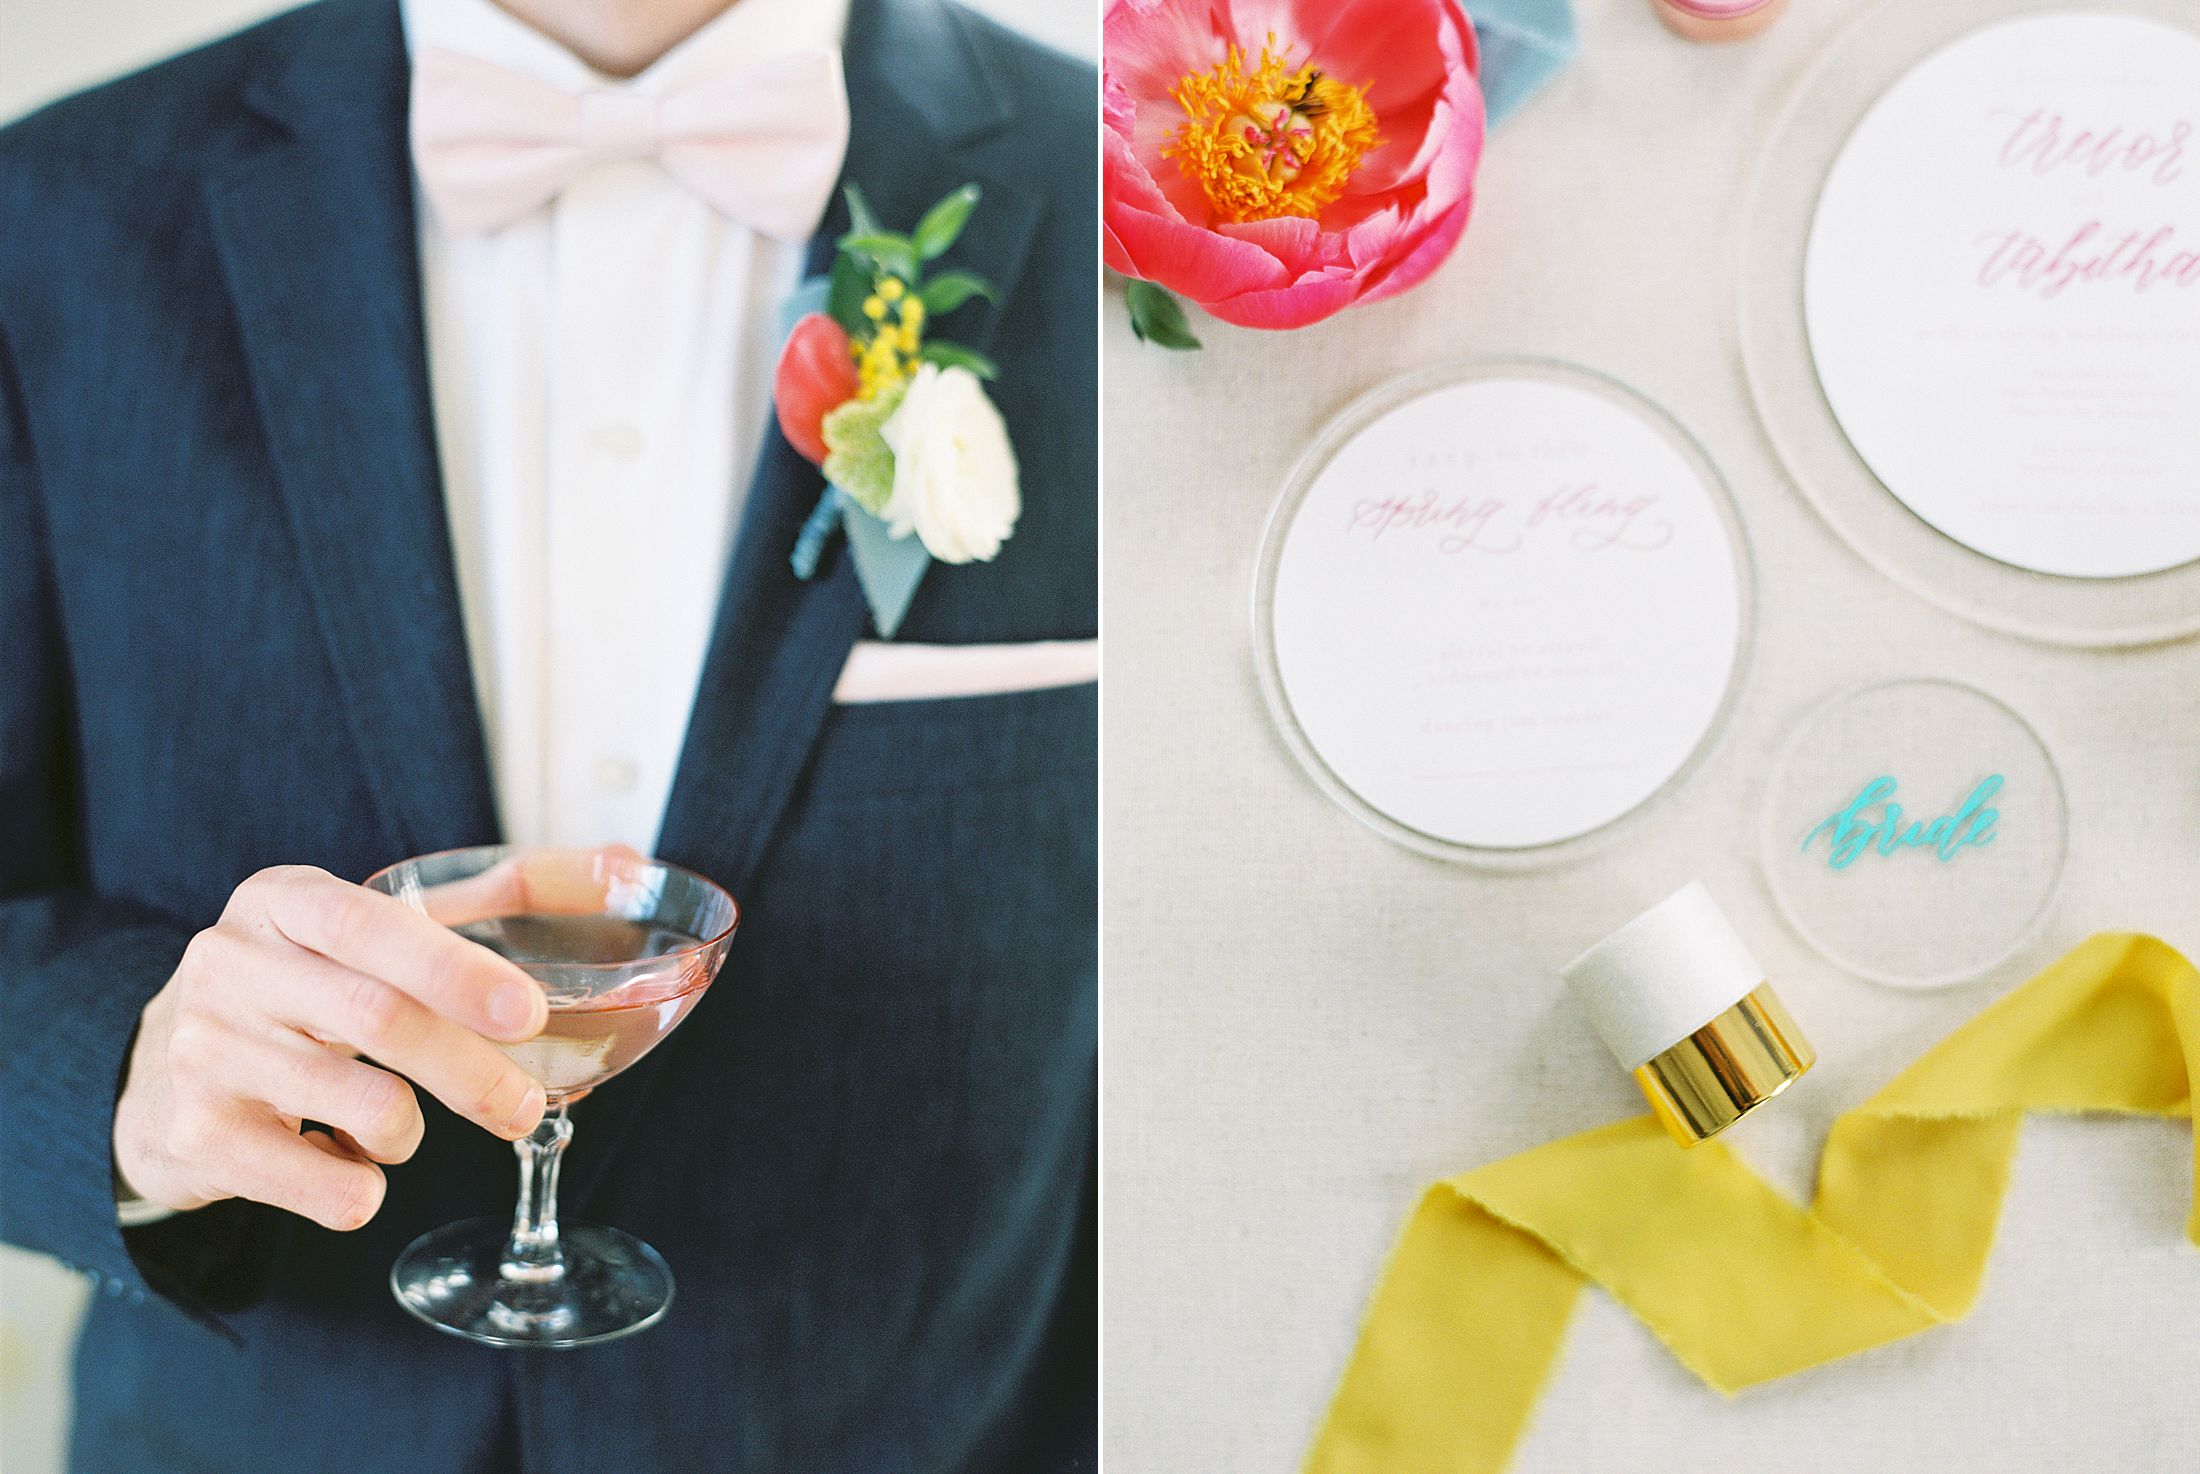 Bay Area Spring Wedding Inspiration - Ashley Baumgartner - Inspired By This - Party Crush Studio and Lens of Lenox Videography - Bay Area Wedding Photography_0029.jpg